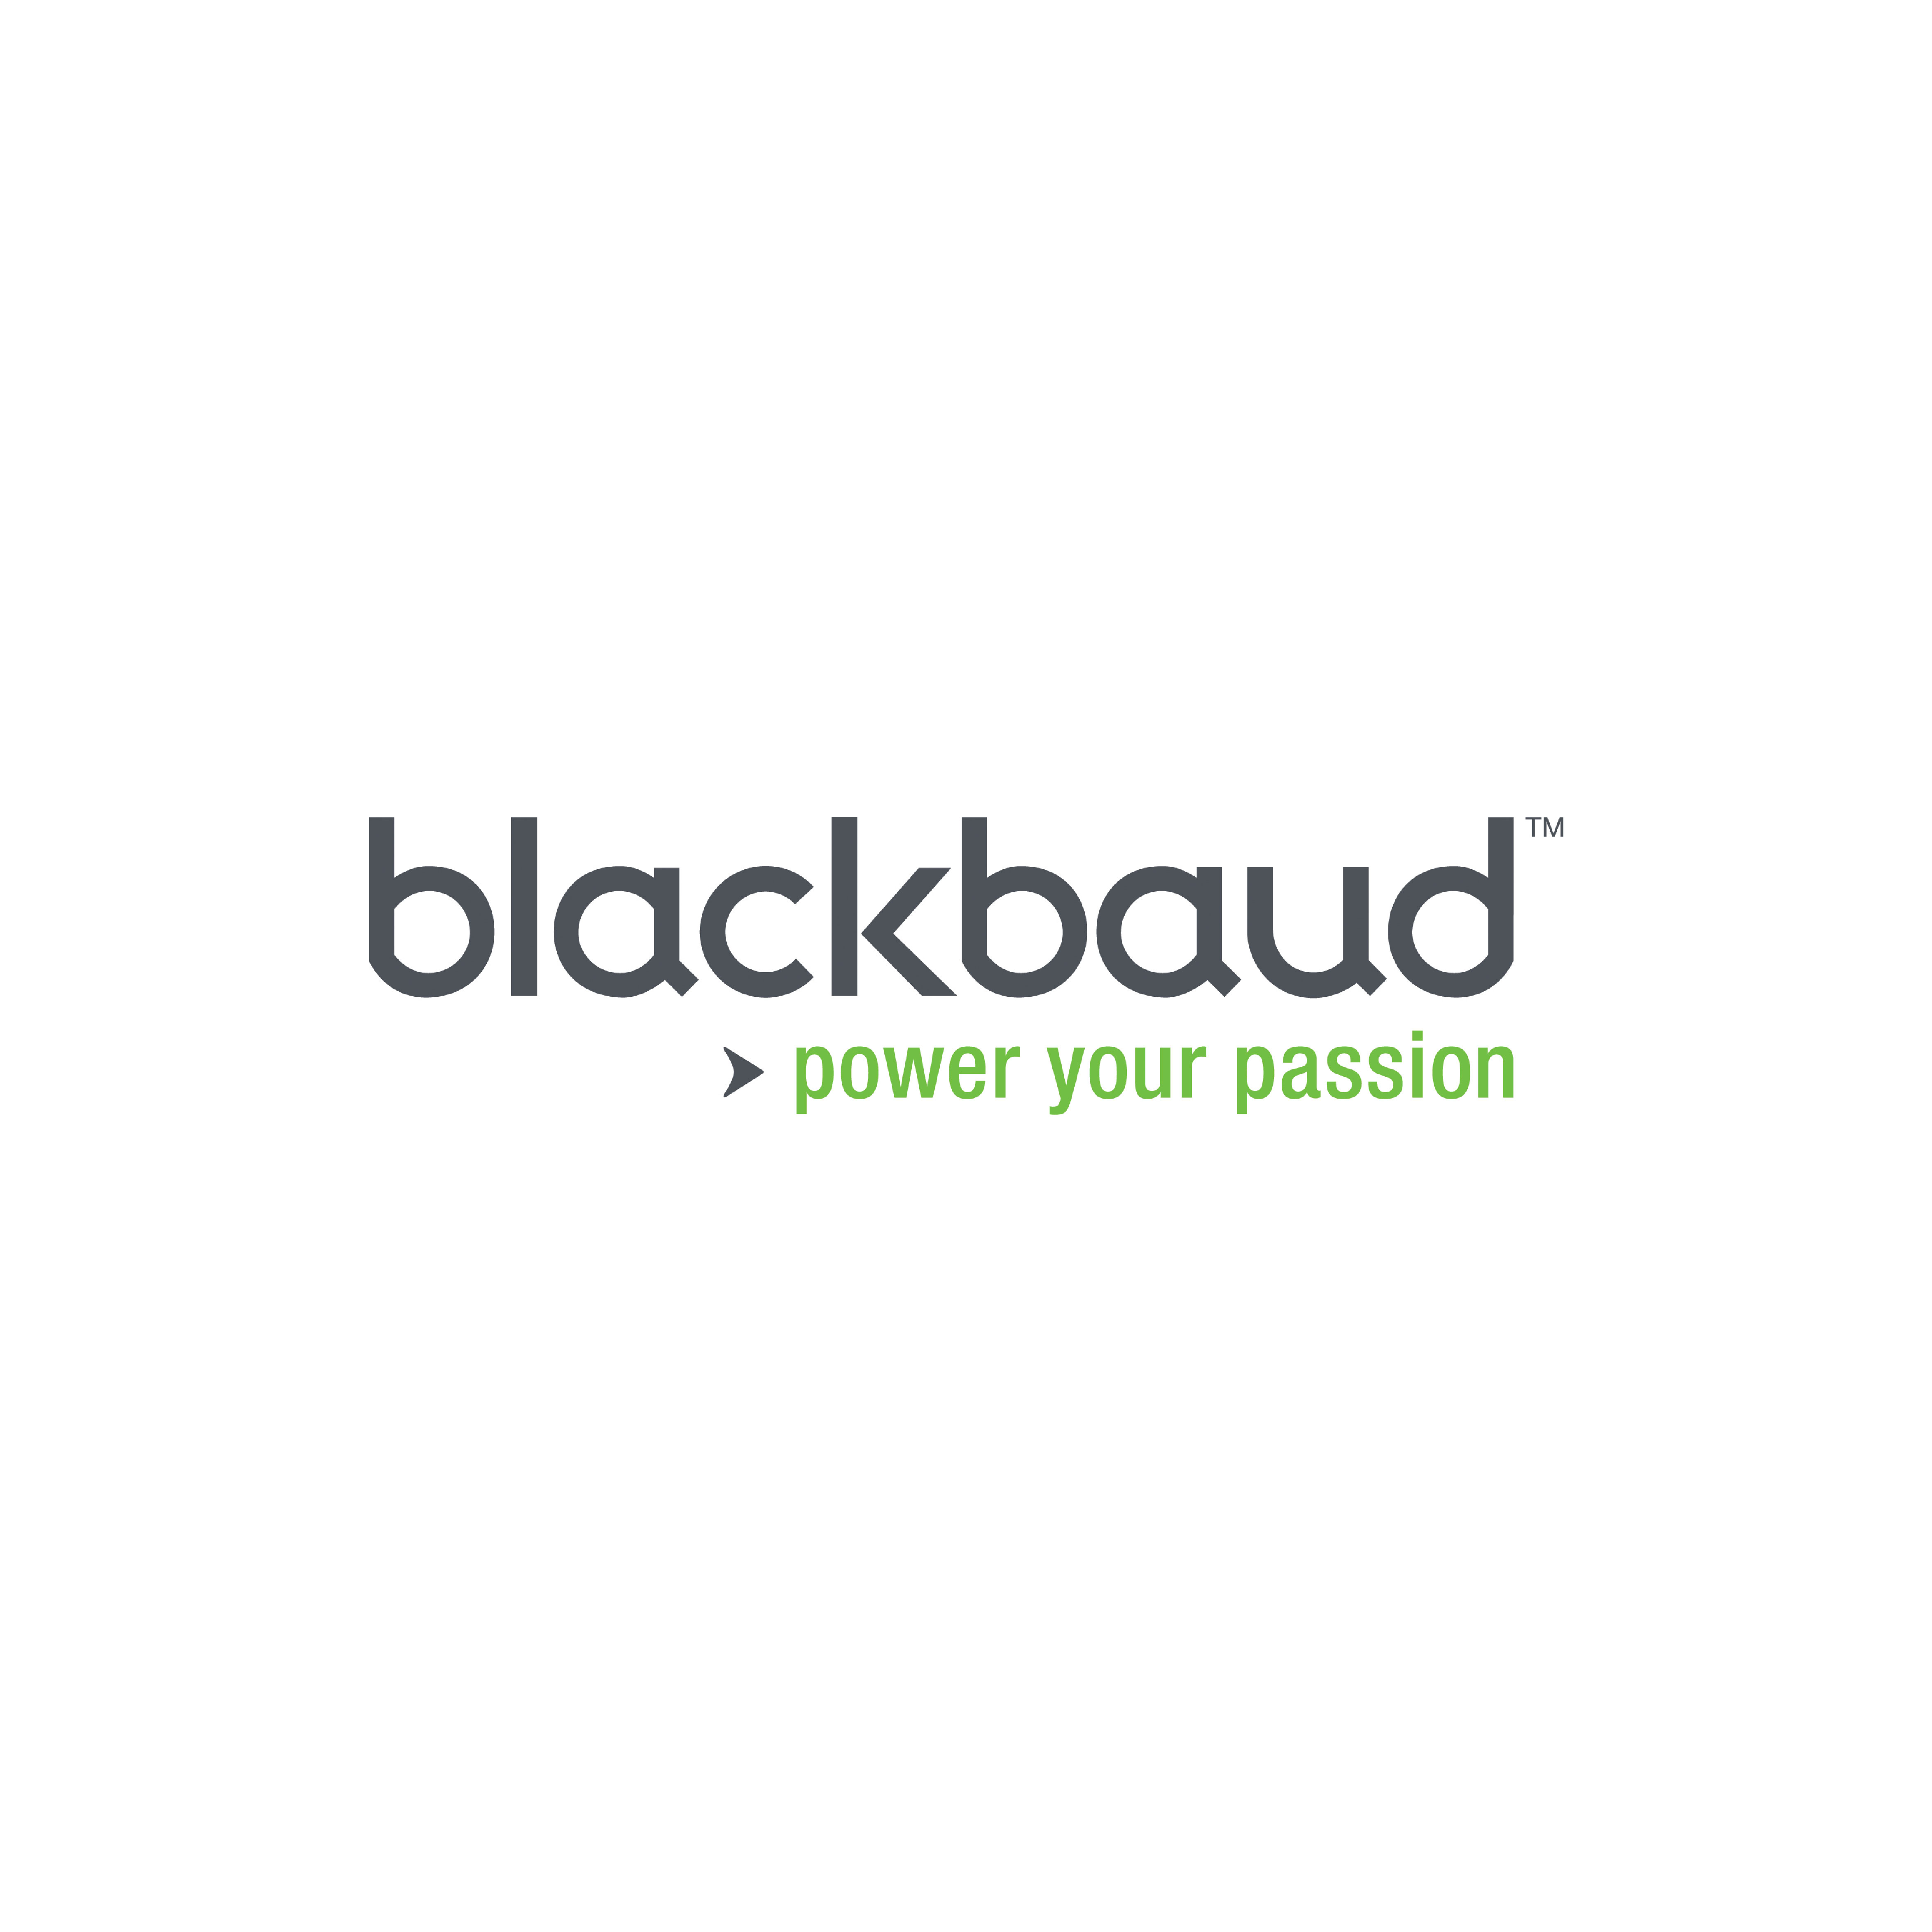 Blackbaud logo square • About Vidigami.